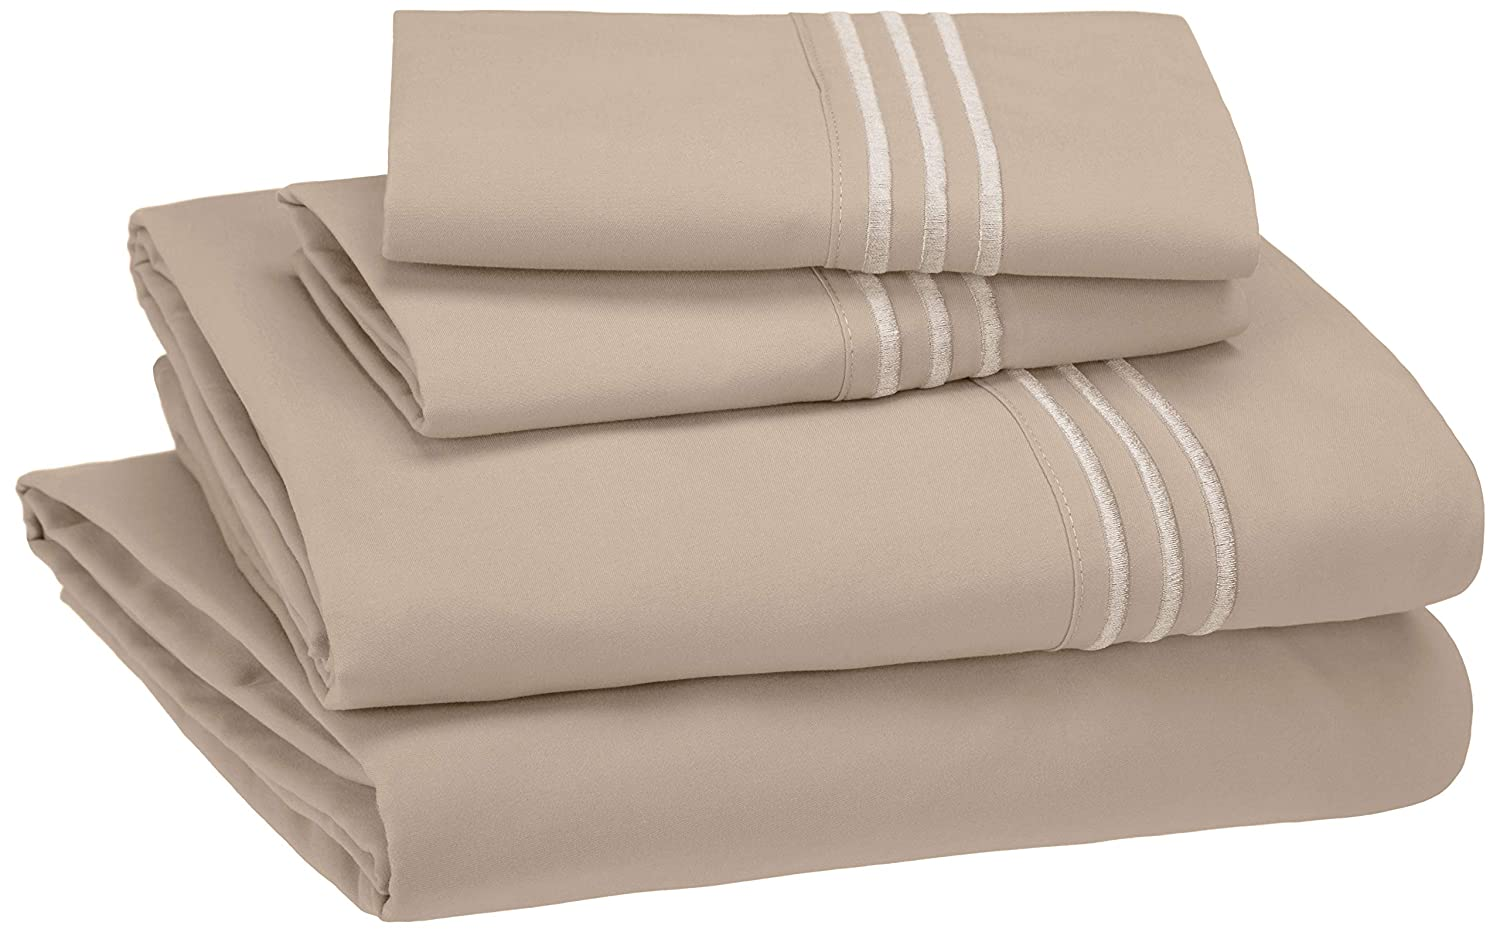 AmazonBasics Embroidered Hotel Stitch Sheet Set - Premium, Soft, Easy-Wash Microfiber - Queen, Taupe